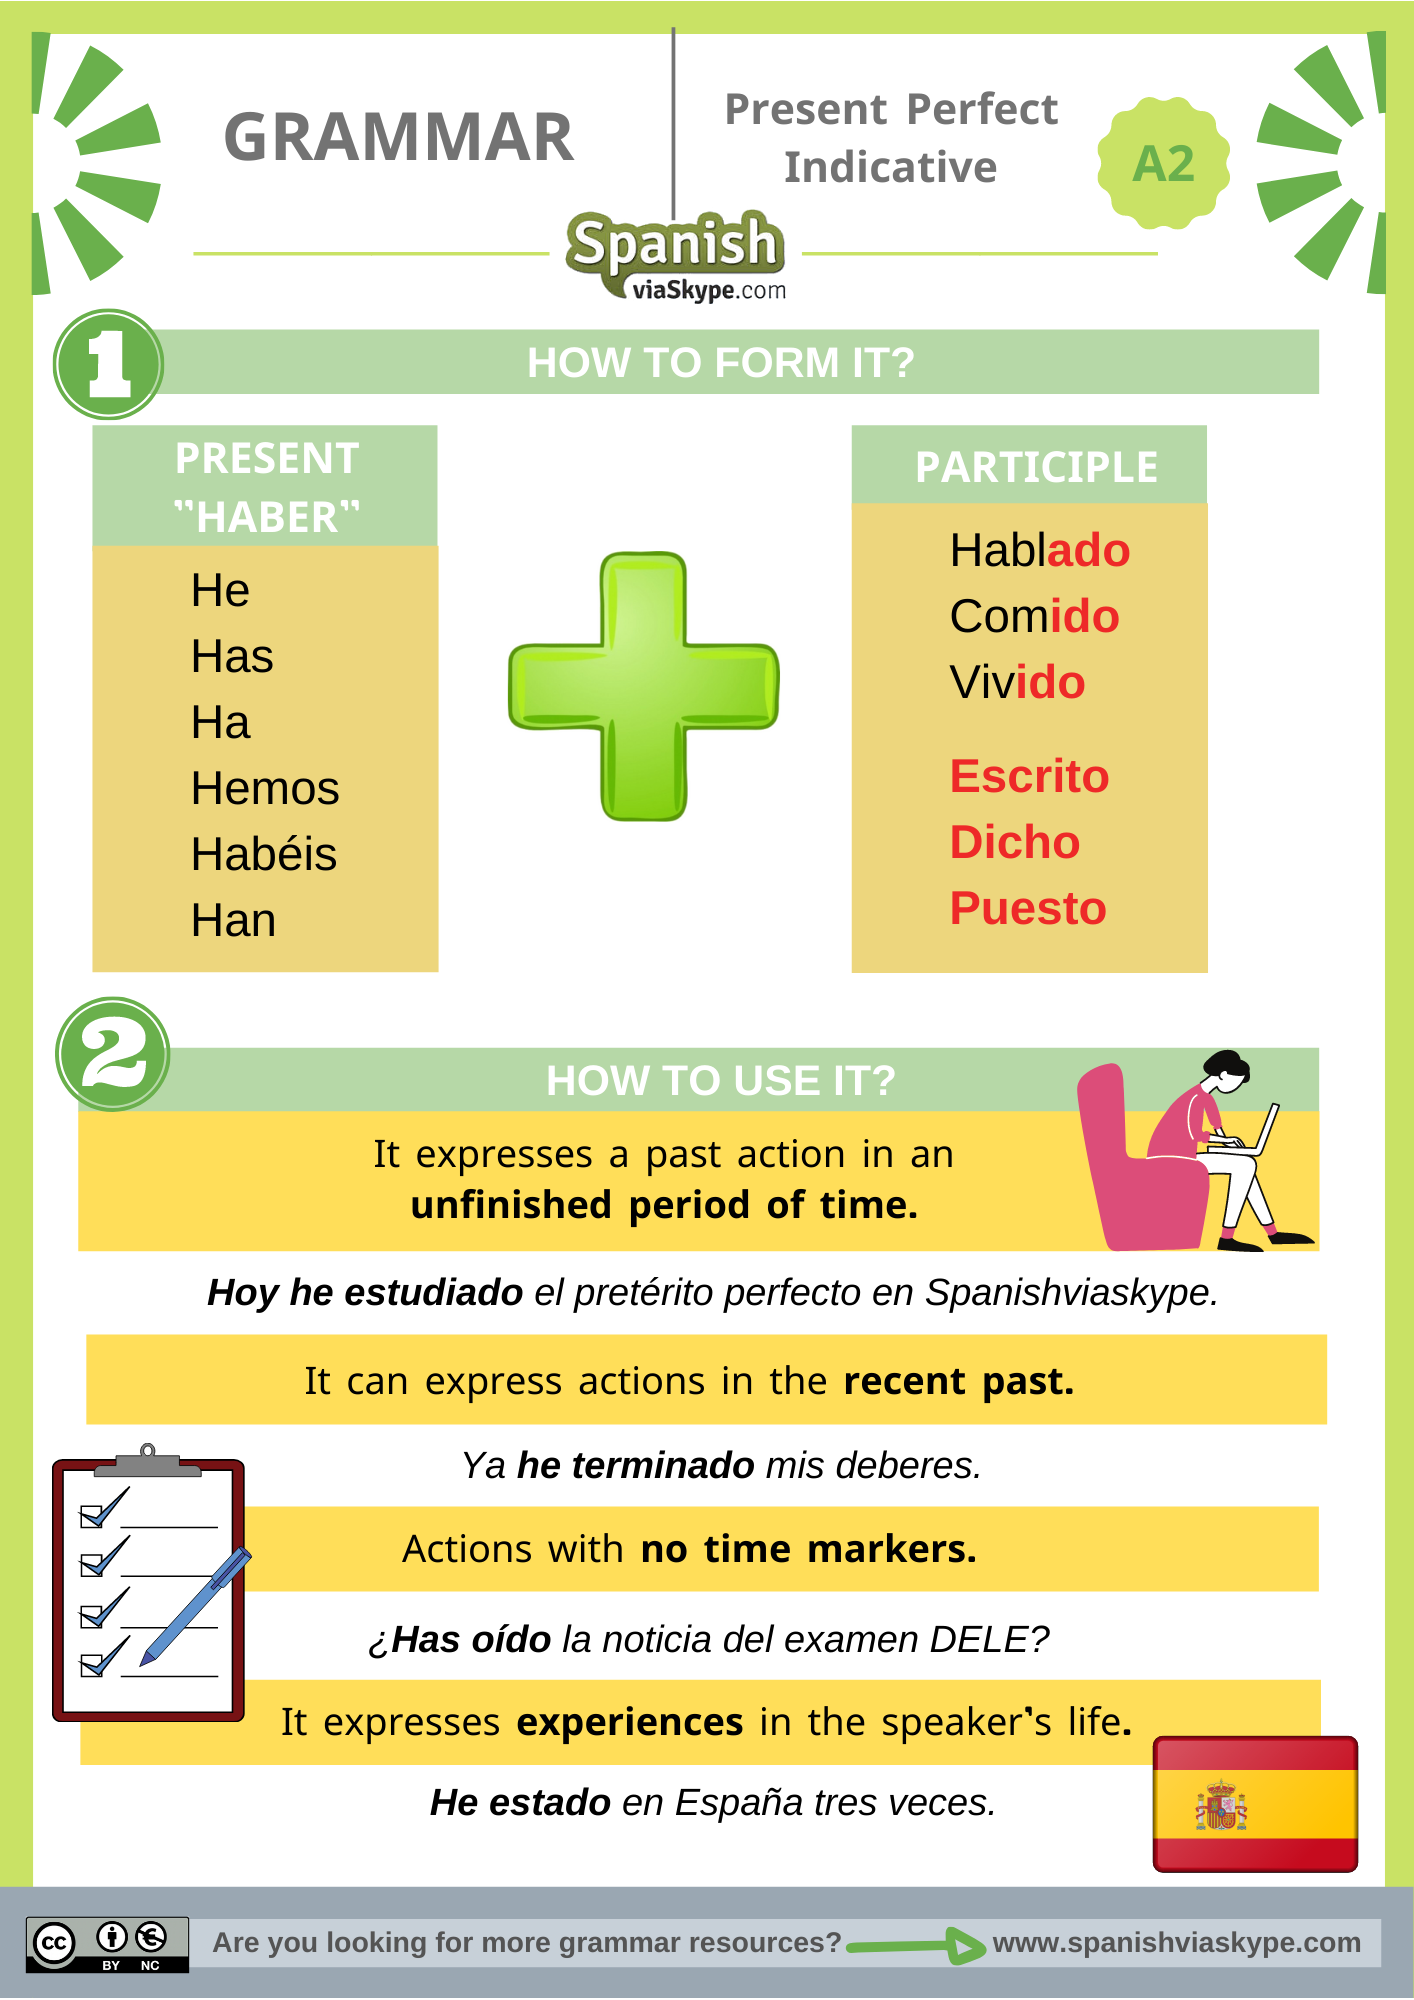 Infography of the present perfect indicative in Spanish